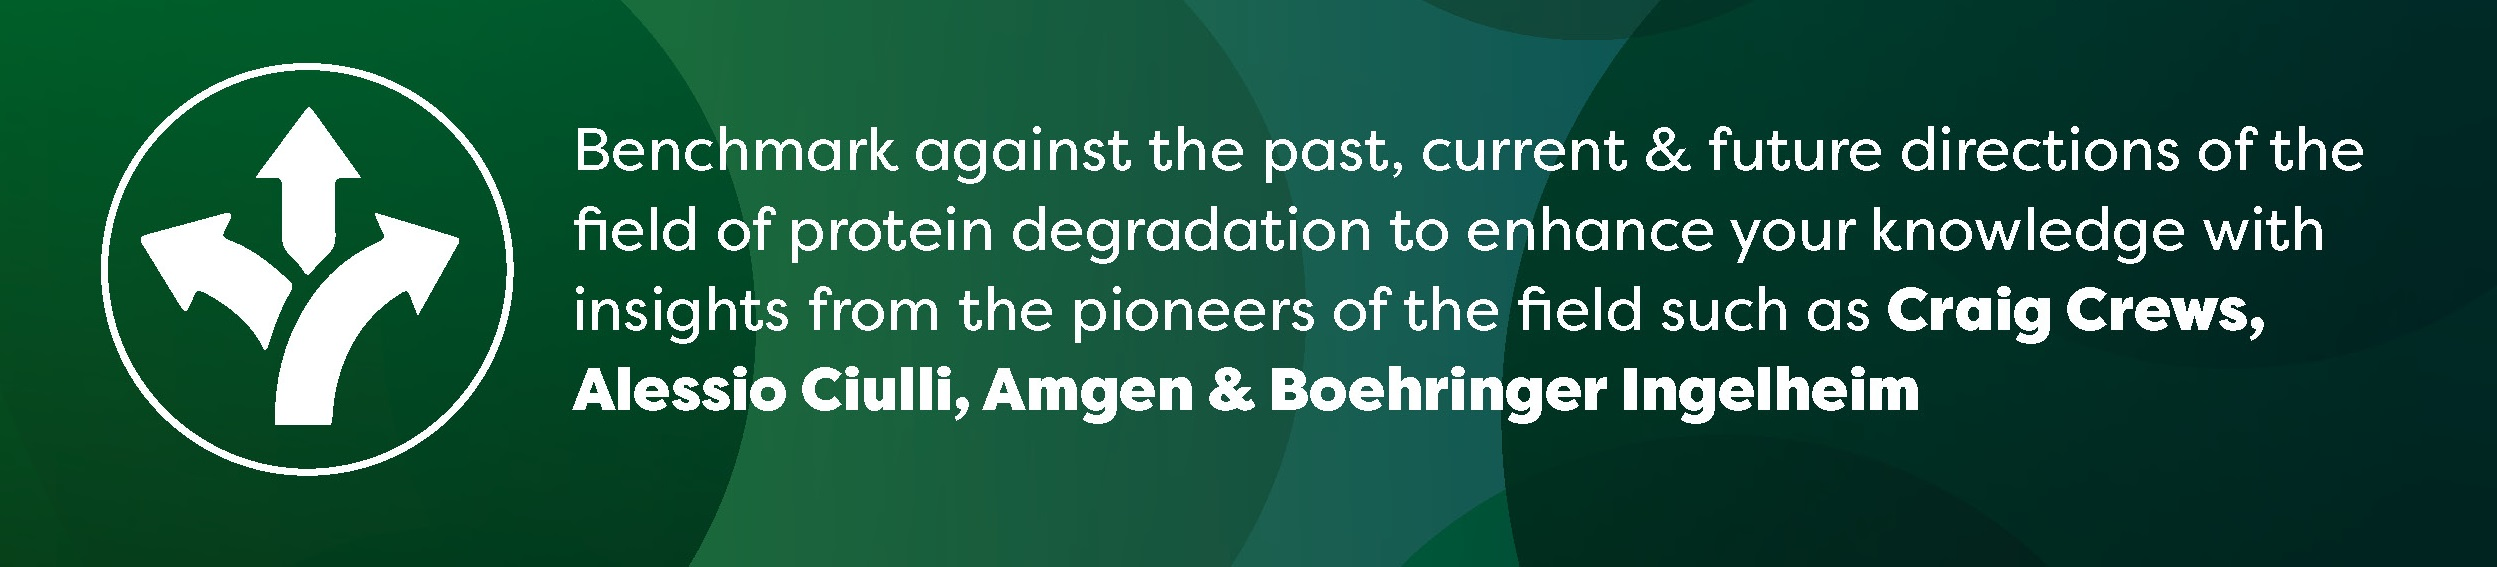 Benchmark against the past, current & future directions of the field of protein degradation to enhance your knowledge with insights from the pioneers of the field such as Craig Crews, Alessio Ciulli, Amgen & Boehringer Ingelheim